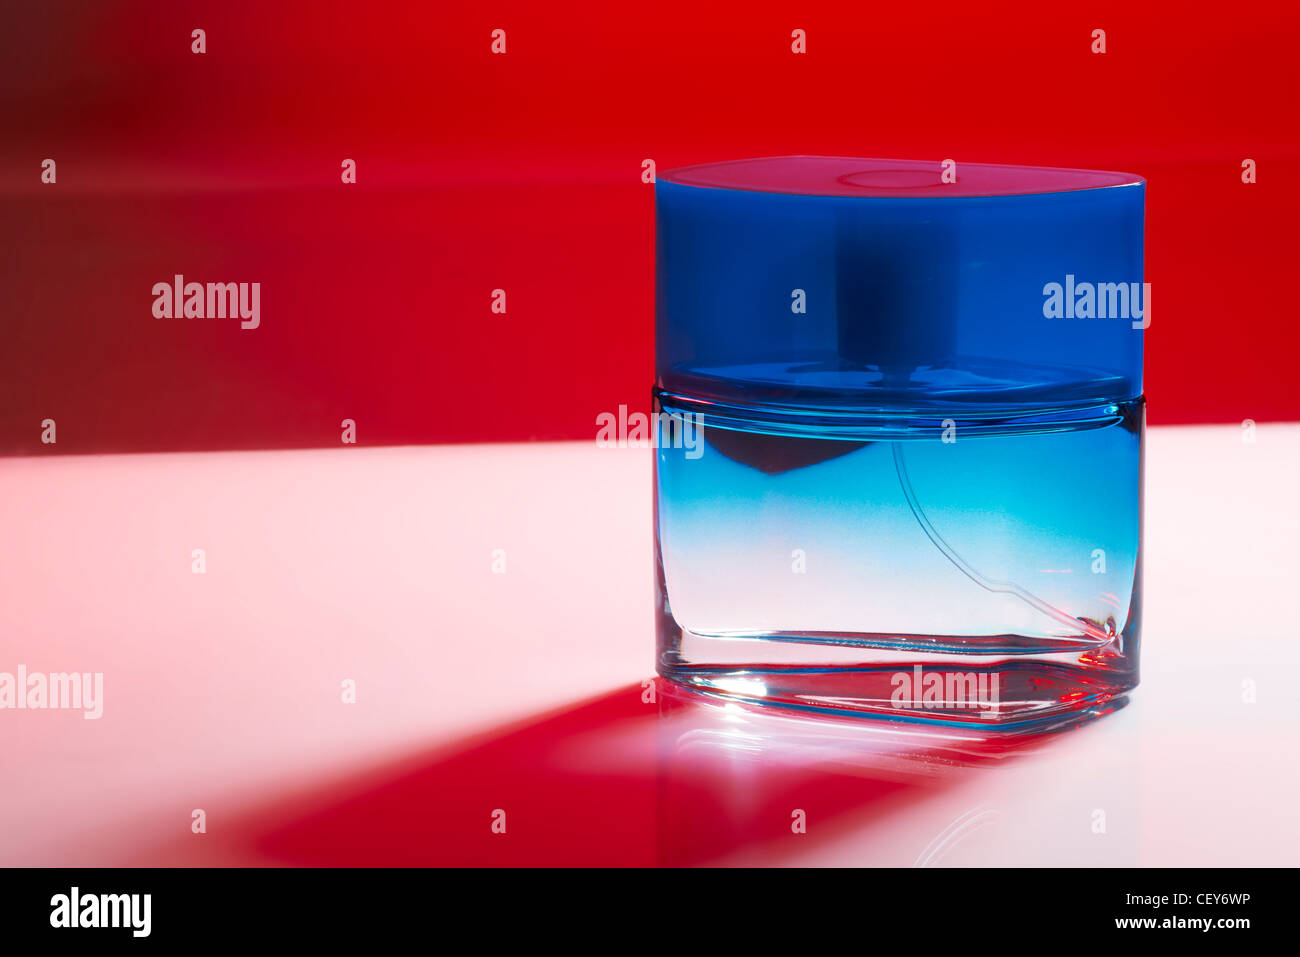 Blue perfume bottle on purple background with red shadow - Stock Image